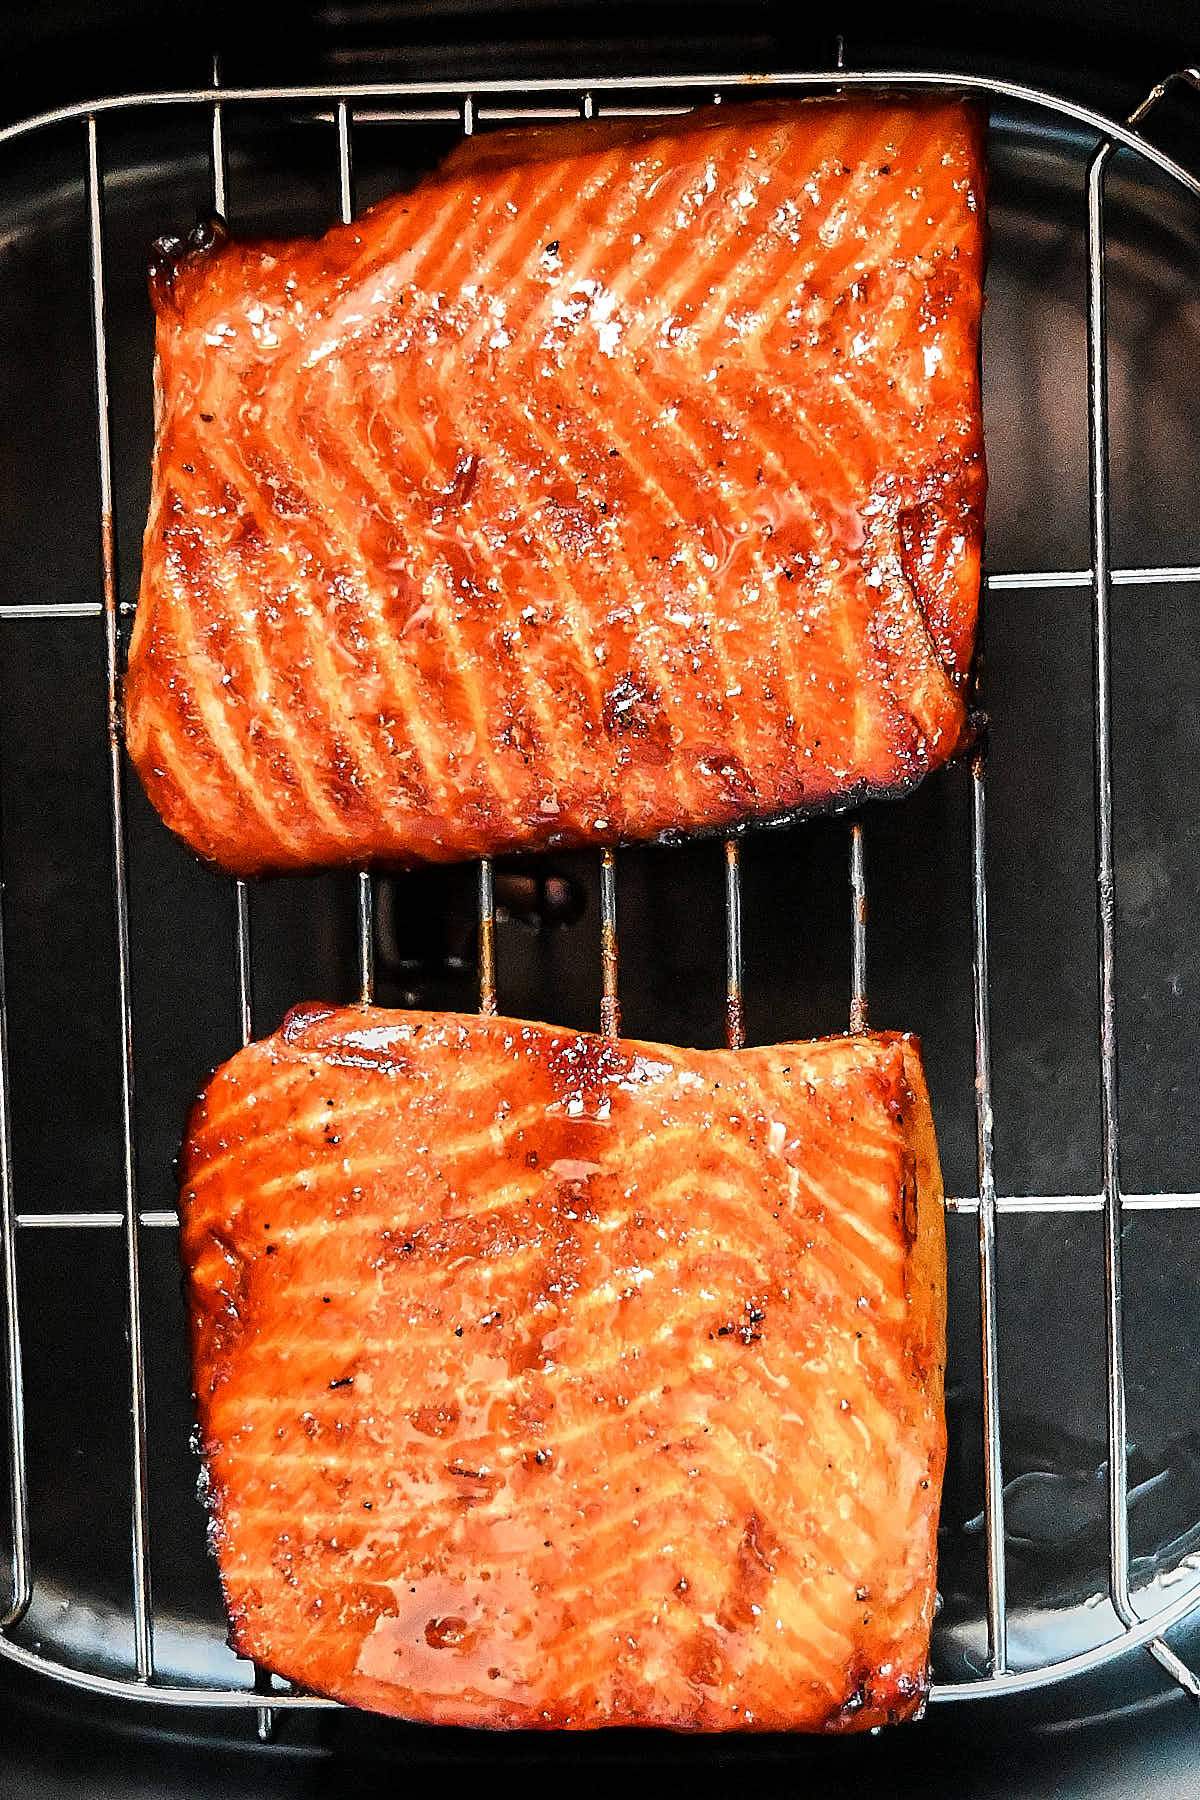 Air fried salmon pieces inside an air fryer on a rack.